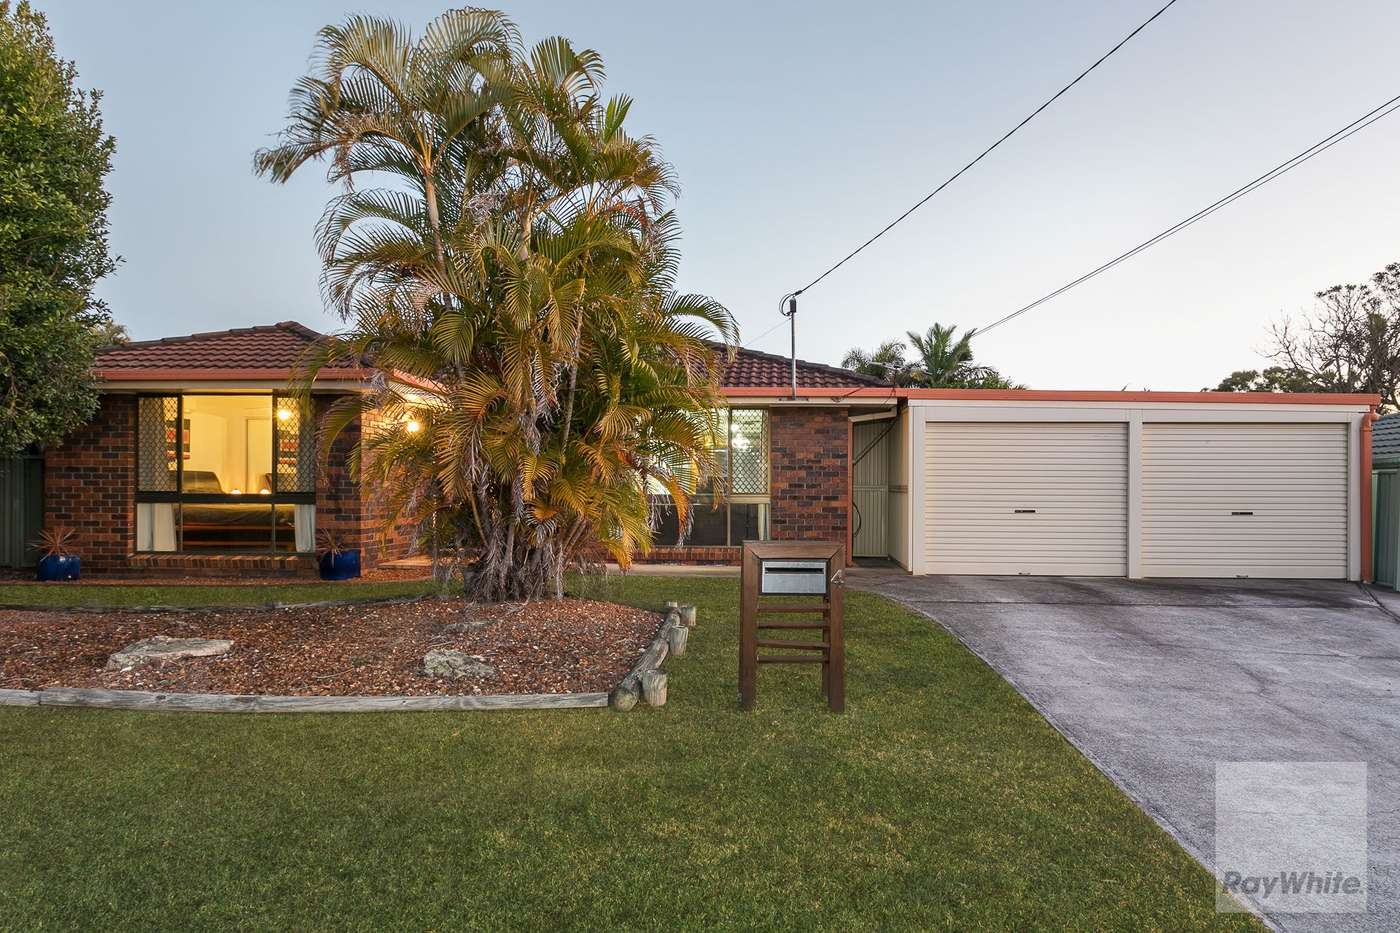 Main view of Homely house listing, 4 Humber Place, Alexandra Hills, QLD 4161